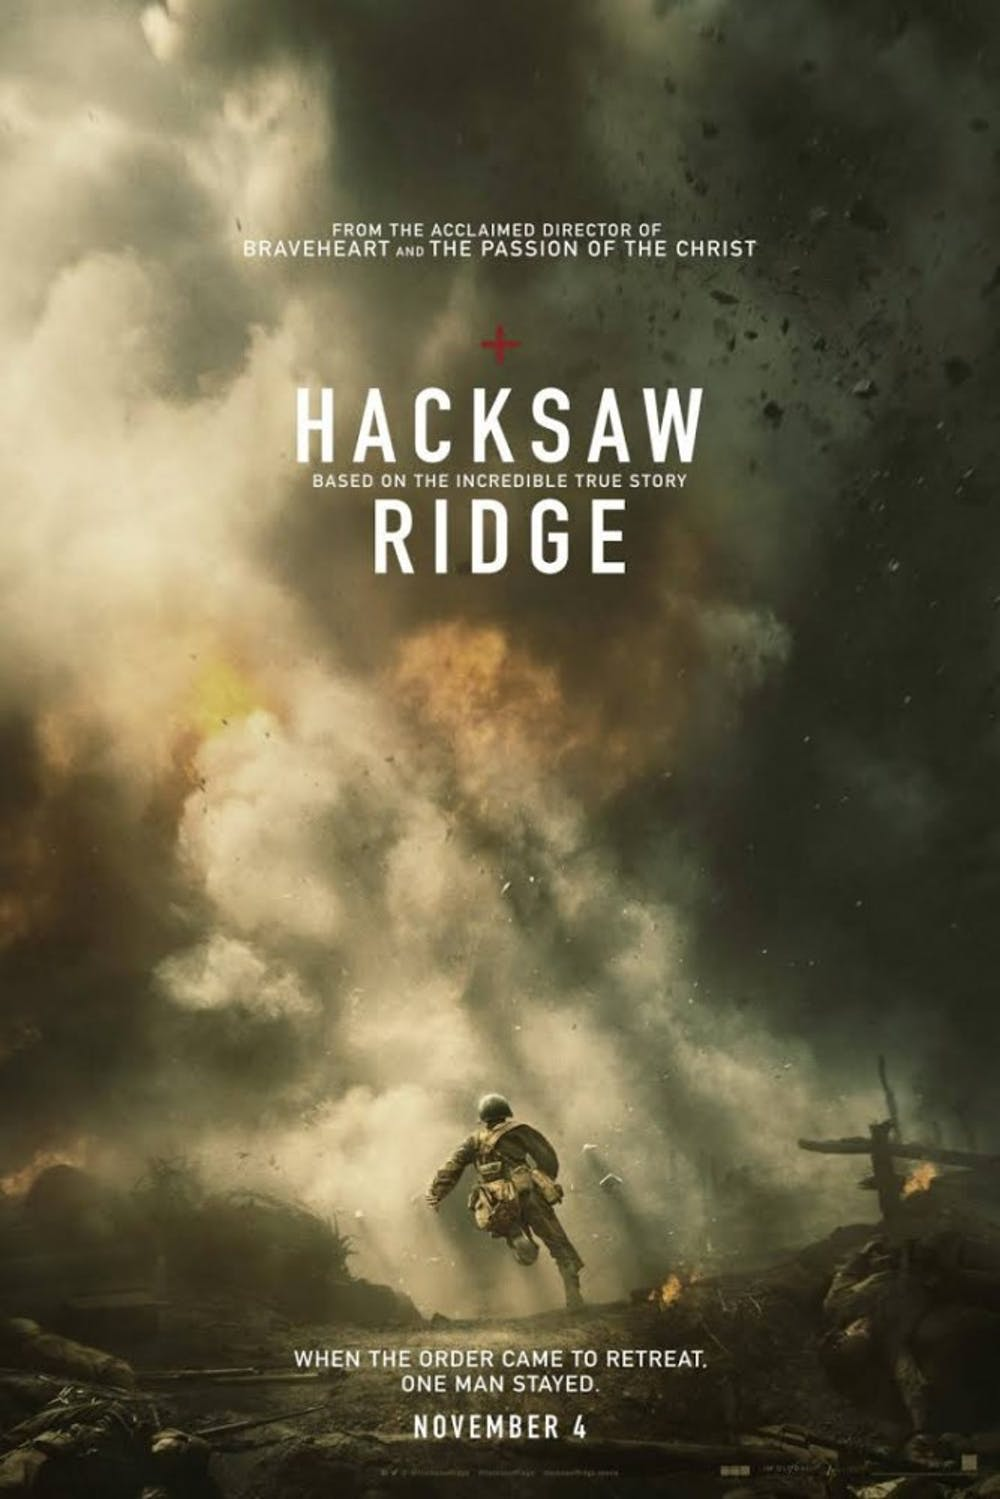 """Review: Religion and war combine in cliché """"Hacksaw Ridge"""""""